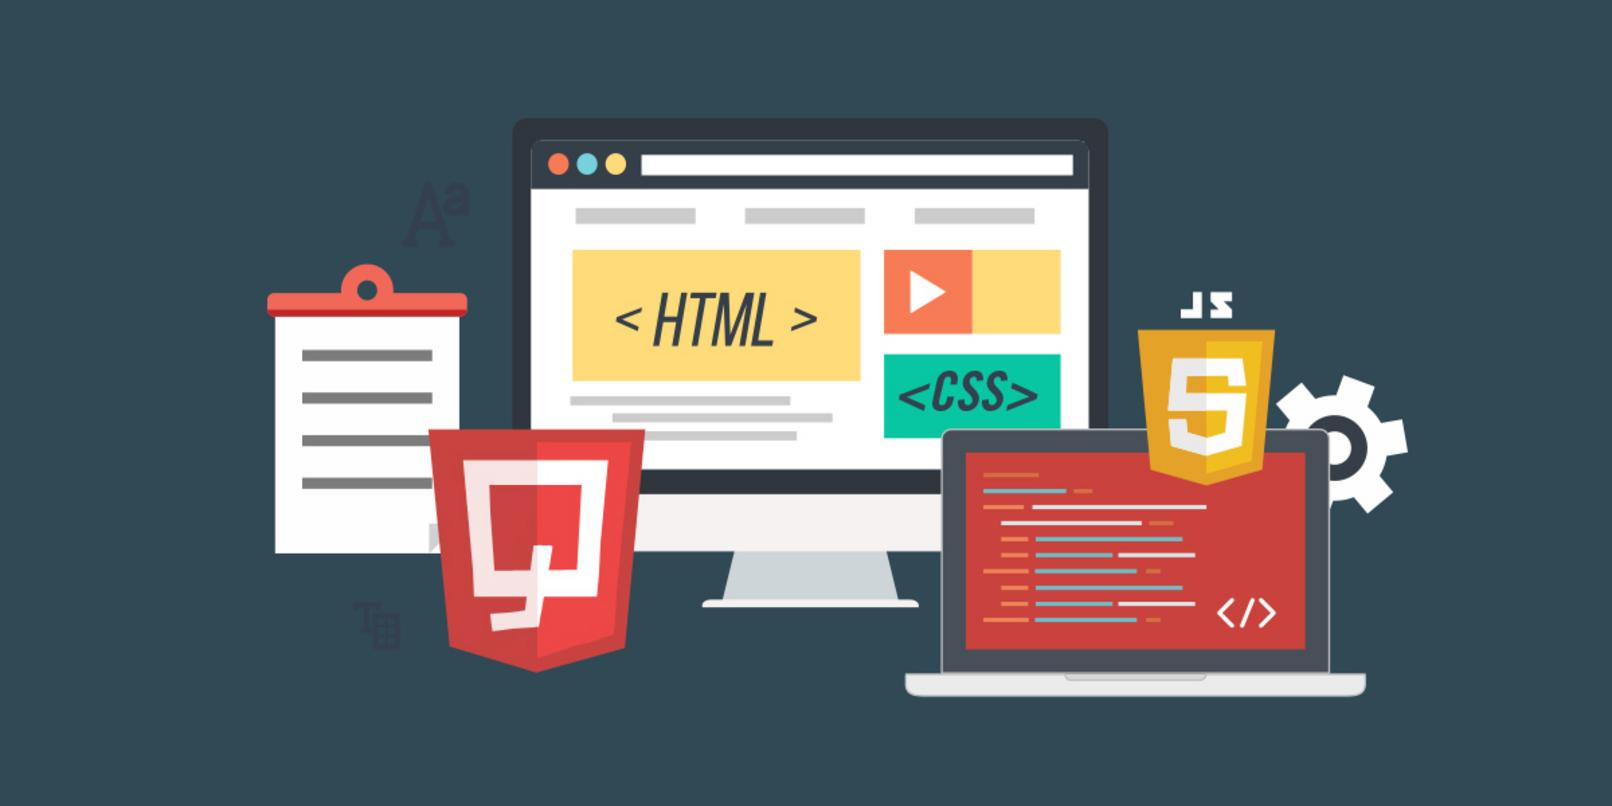 Build stunning apps and websites after completing this 'Ultimate Front End Development' training